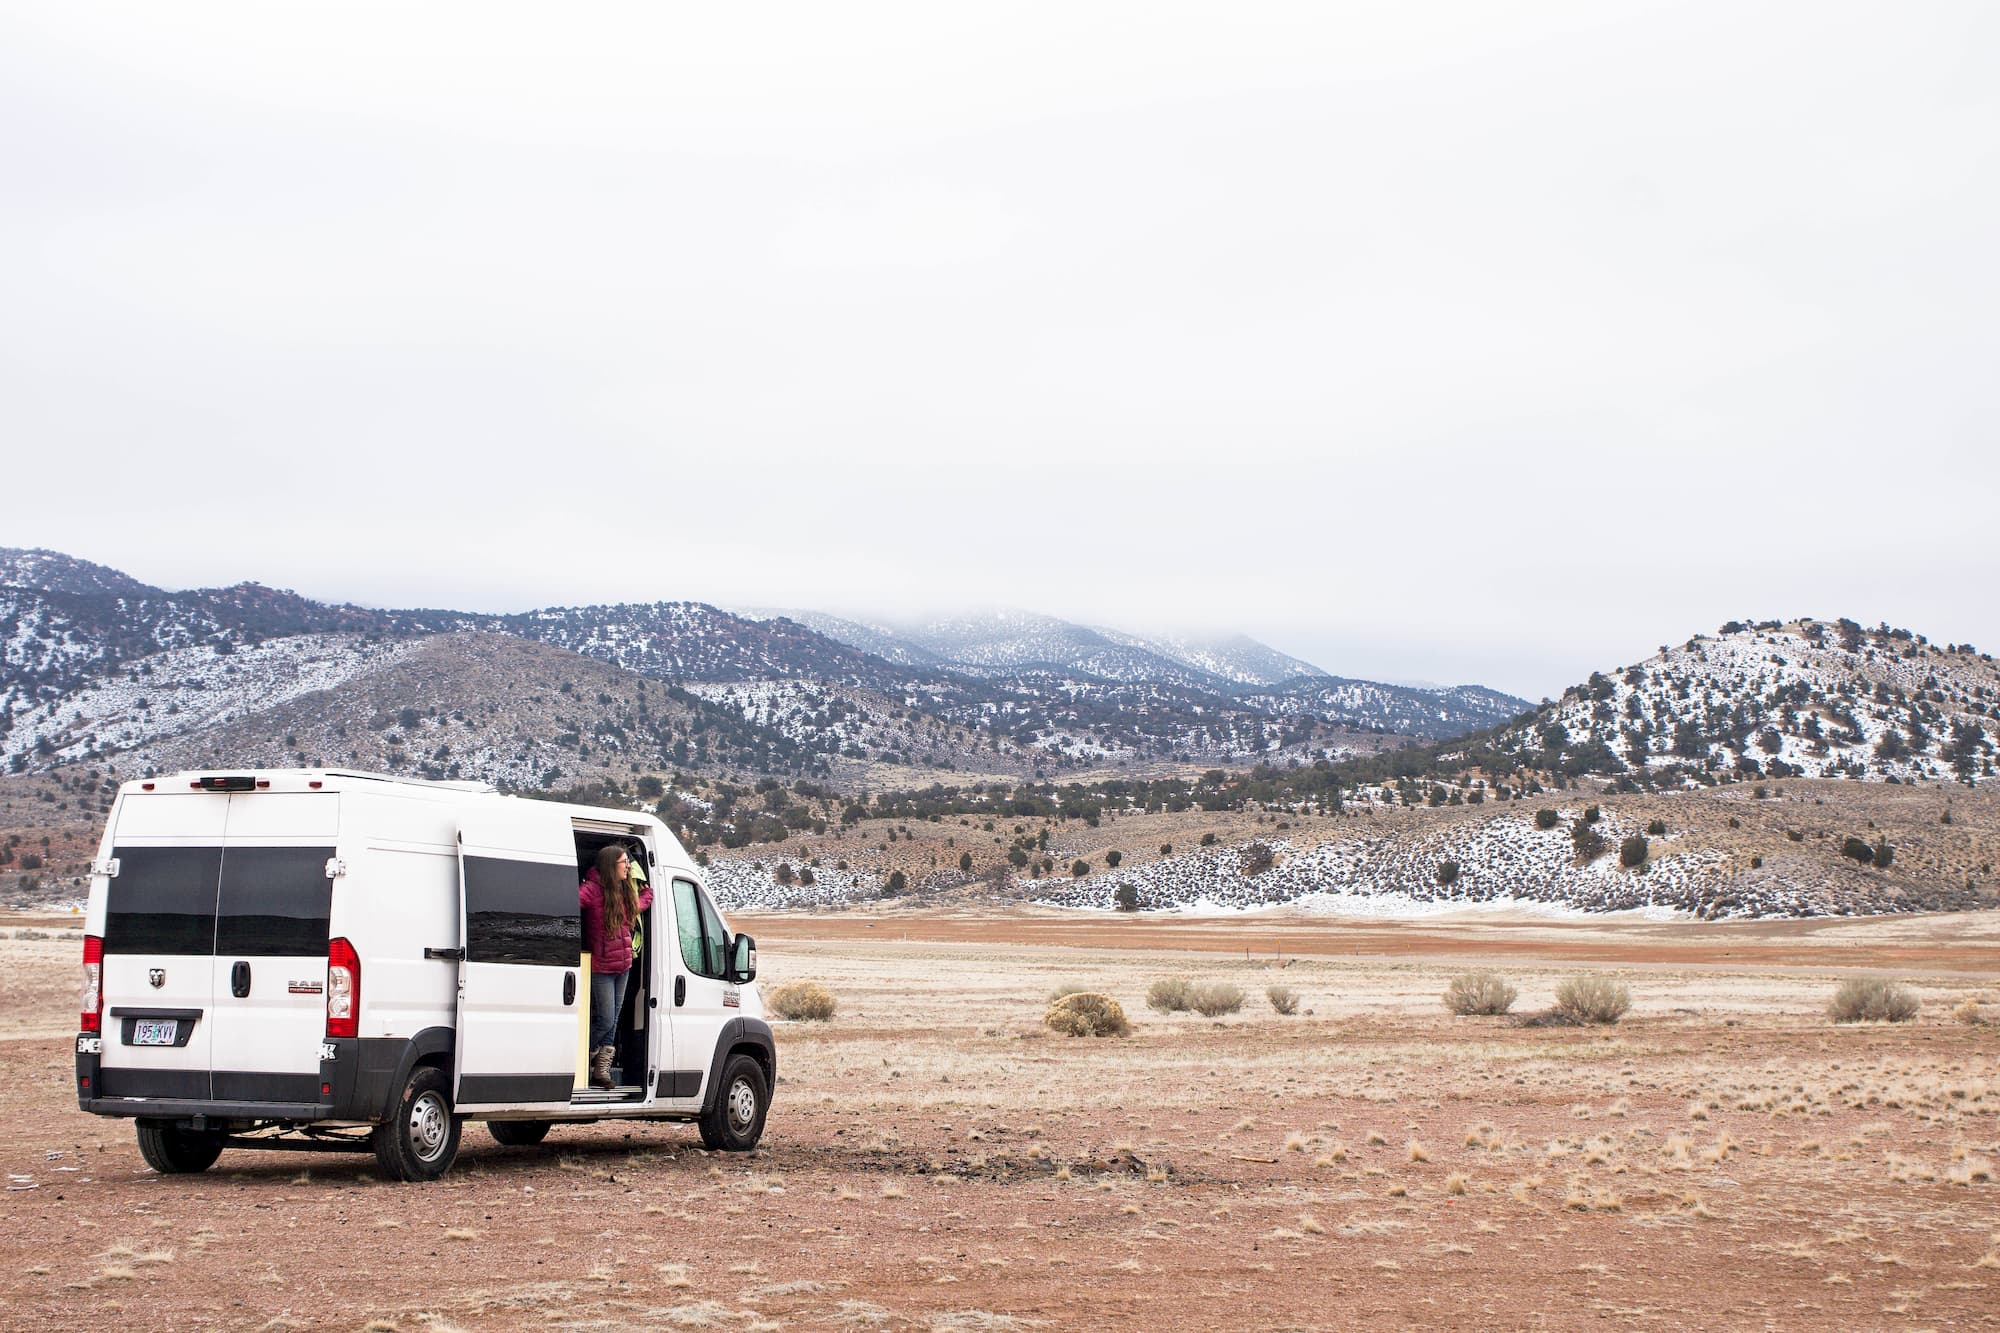 a woman stepping out of a van on a desert with snowy mountains in the background